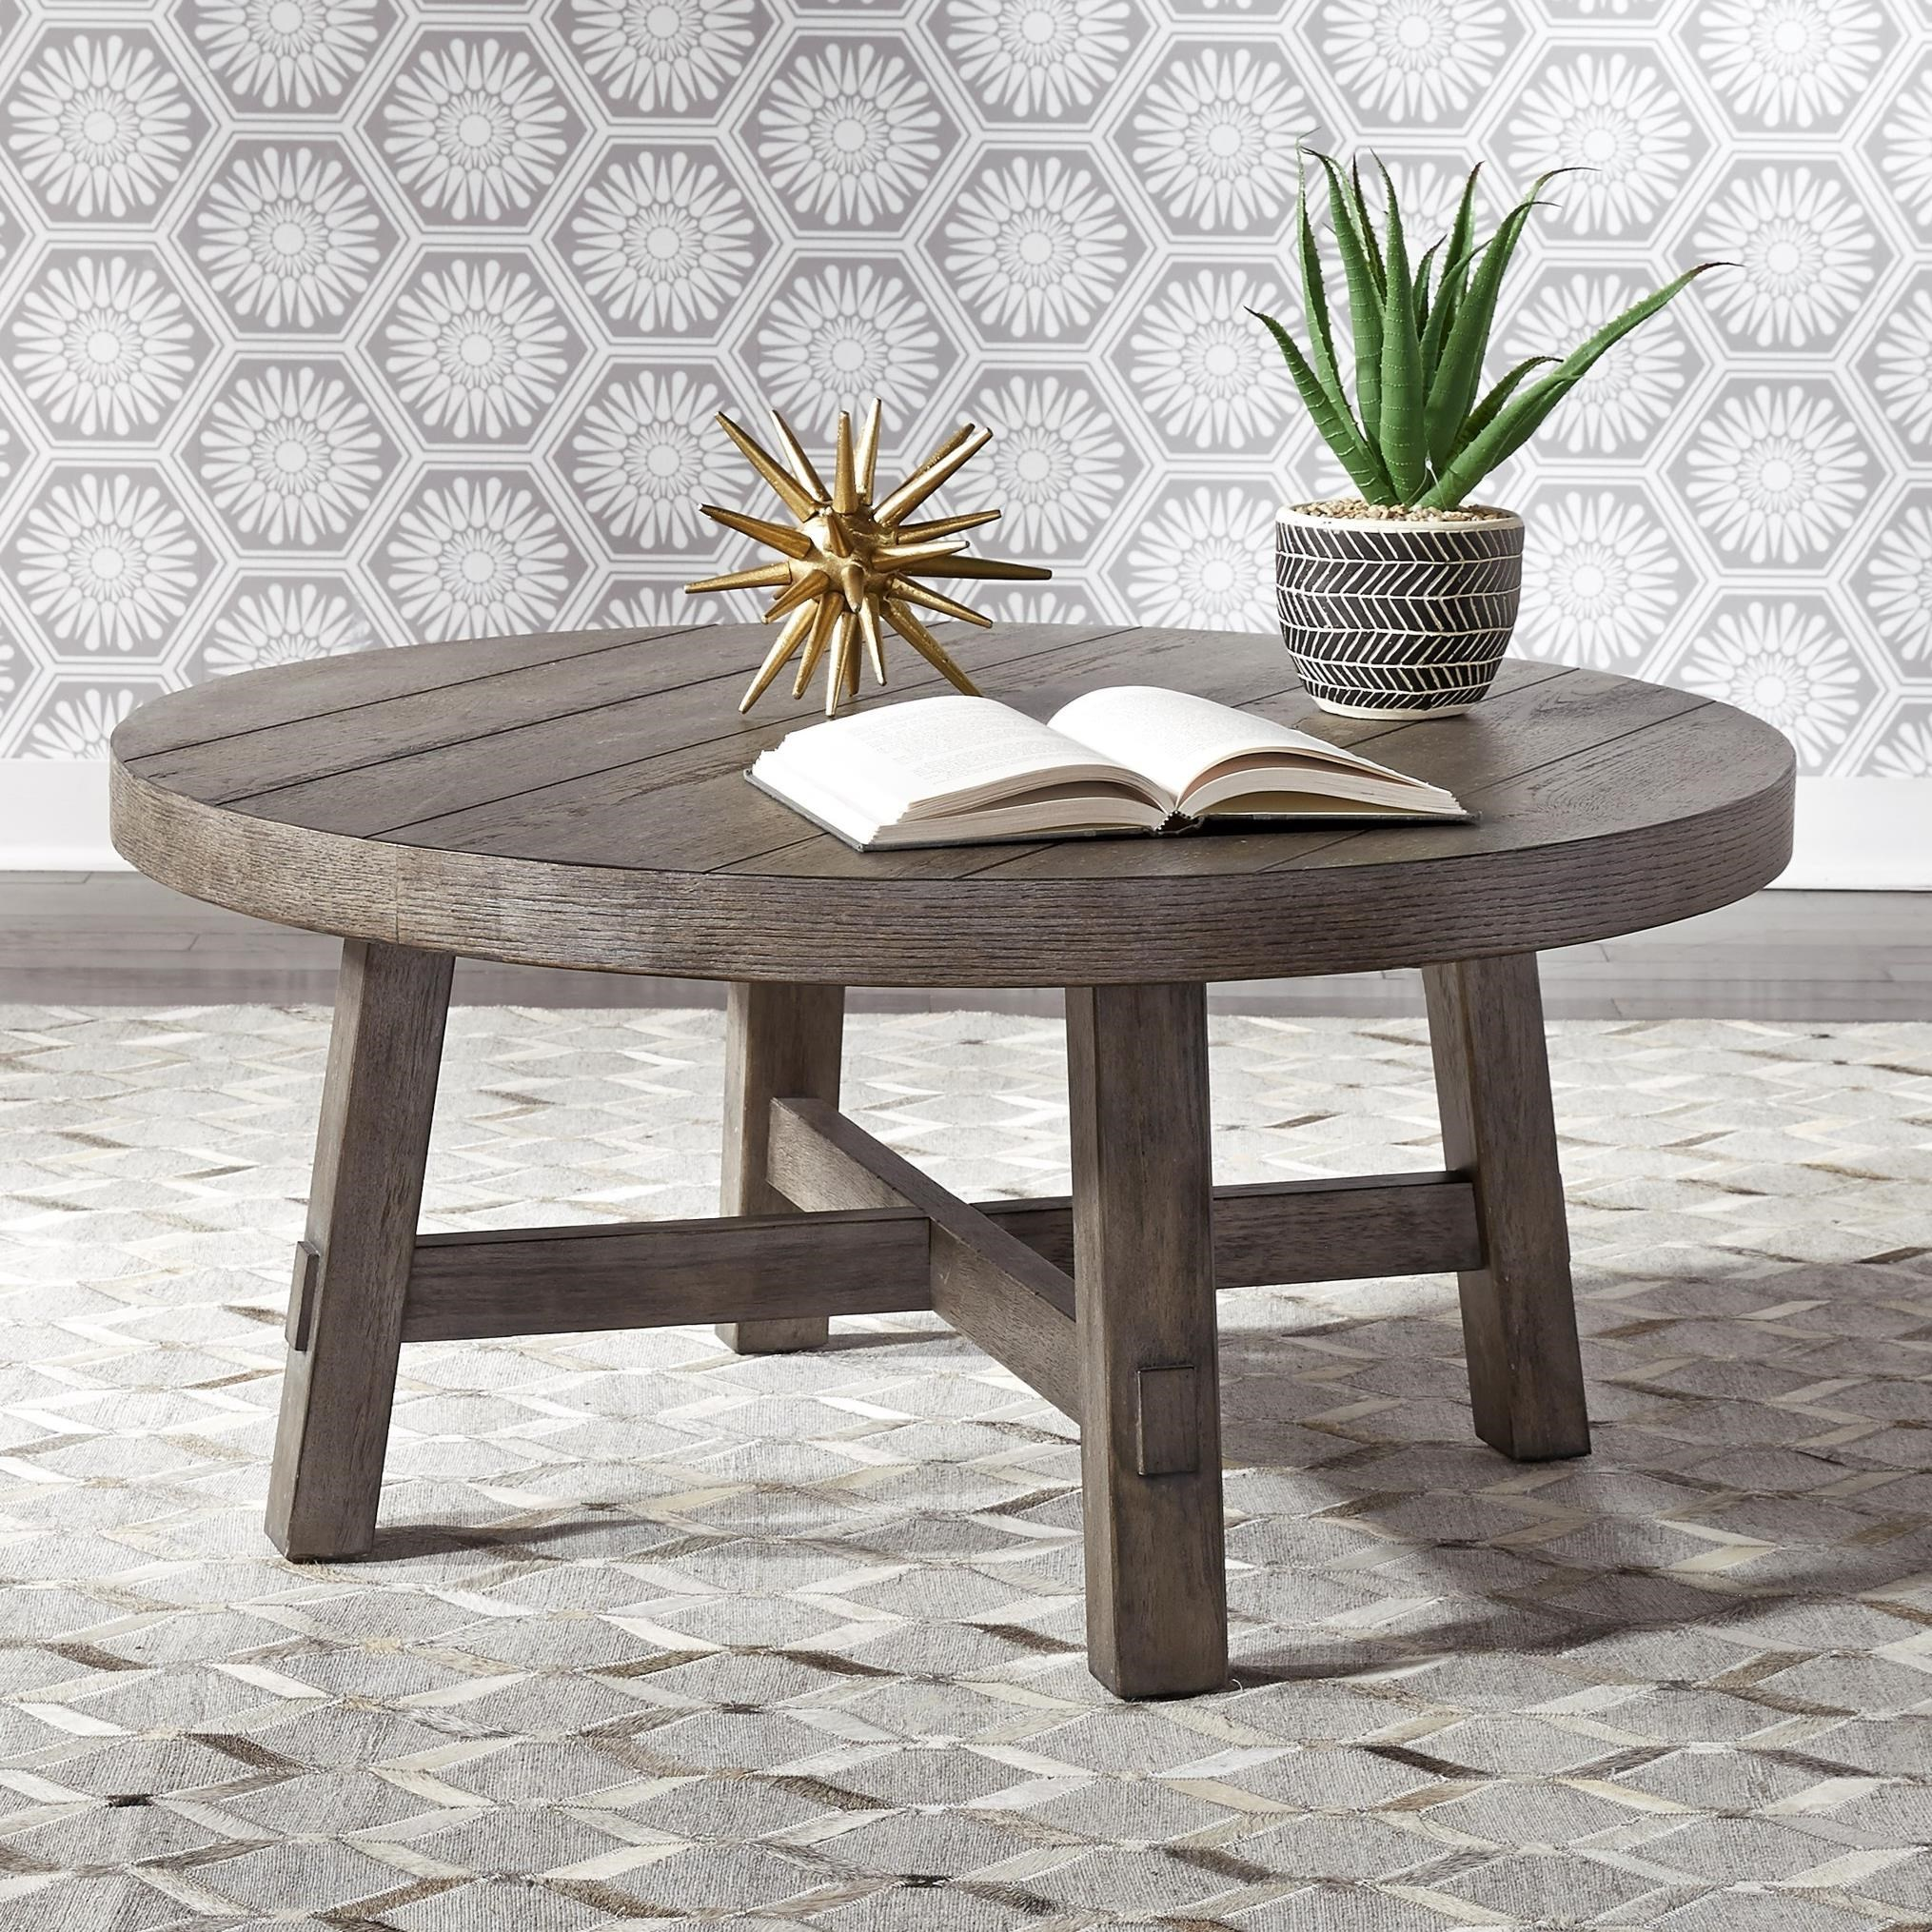 Modern Farmhouse Splay Leg Round Cocktail Table by Libby at Walker's Furniture